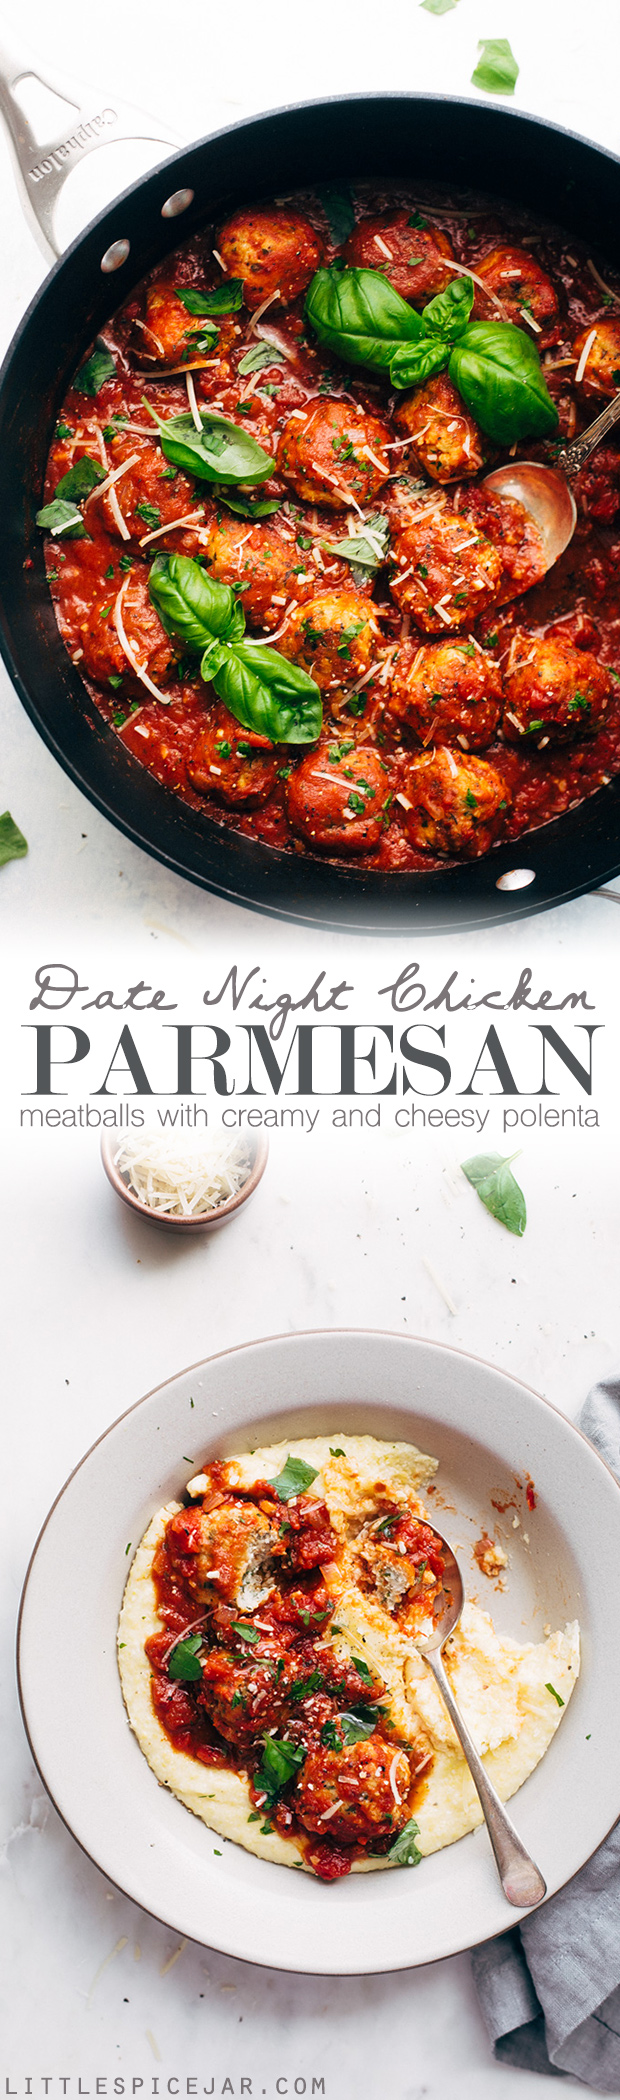 Chicken Parmesan Meatballs and Creamy Polenta - a perfect dish for date night in! These meatballs are flavorful and tender! Serve over parmesan polenta or spaghetti! #chickenparmesan #chickenparmesanmeatballs #polenta #chickenmeatballs #meatballs | Littlespicejar.com